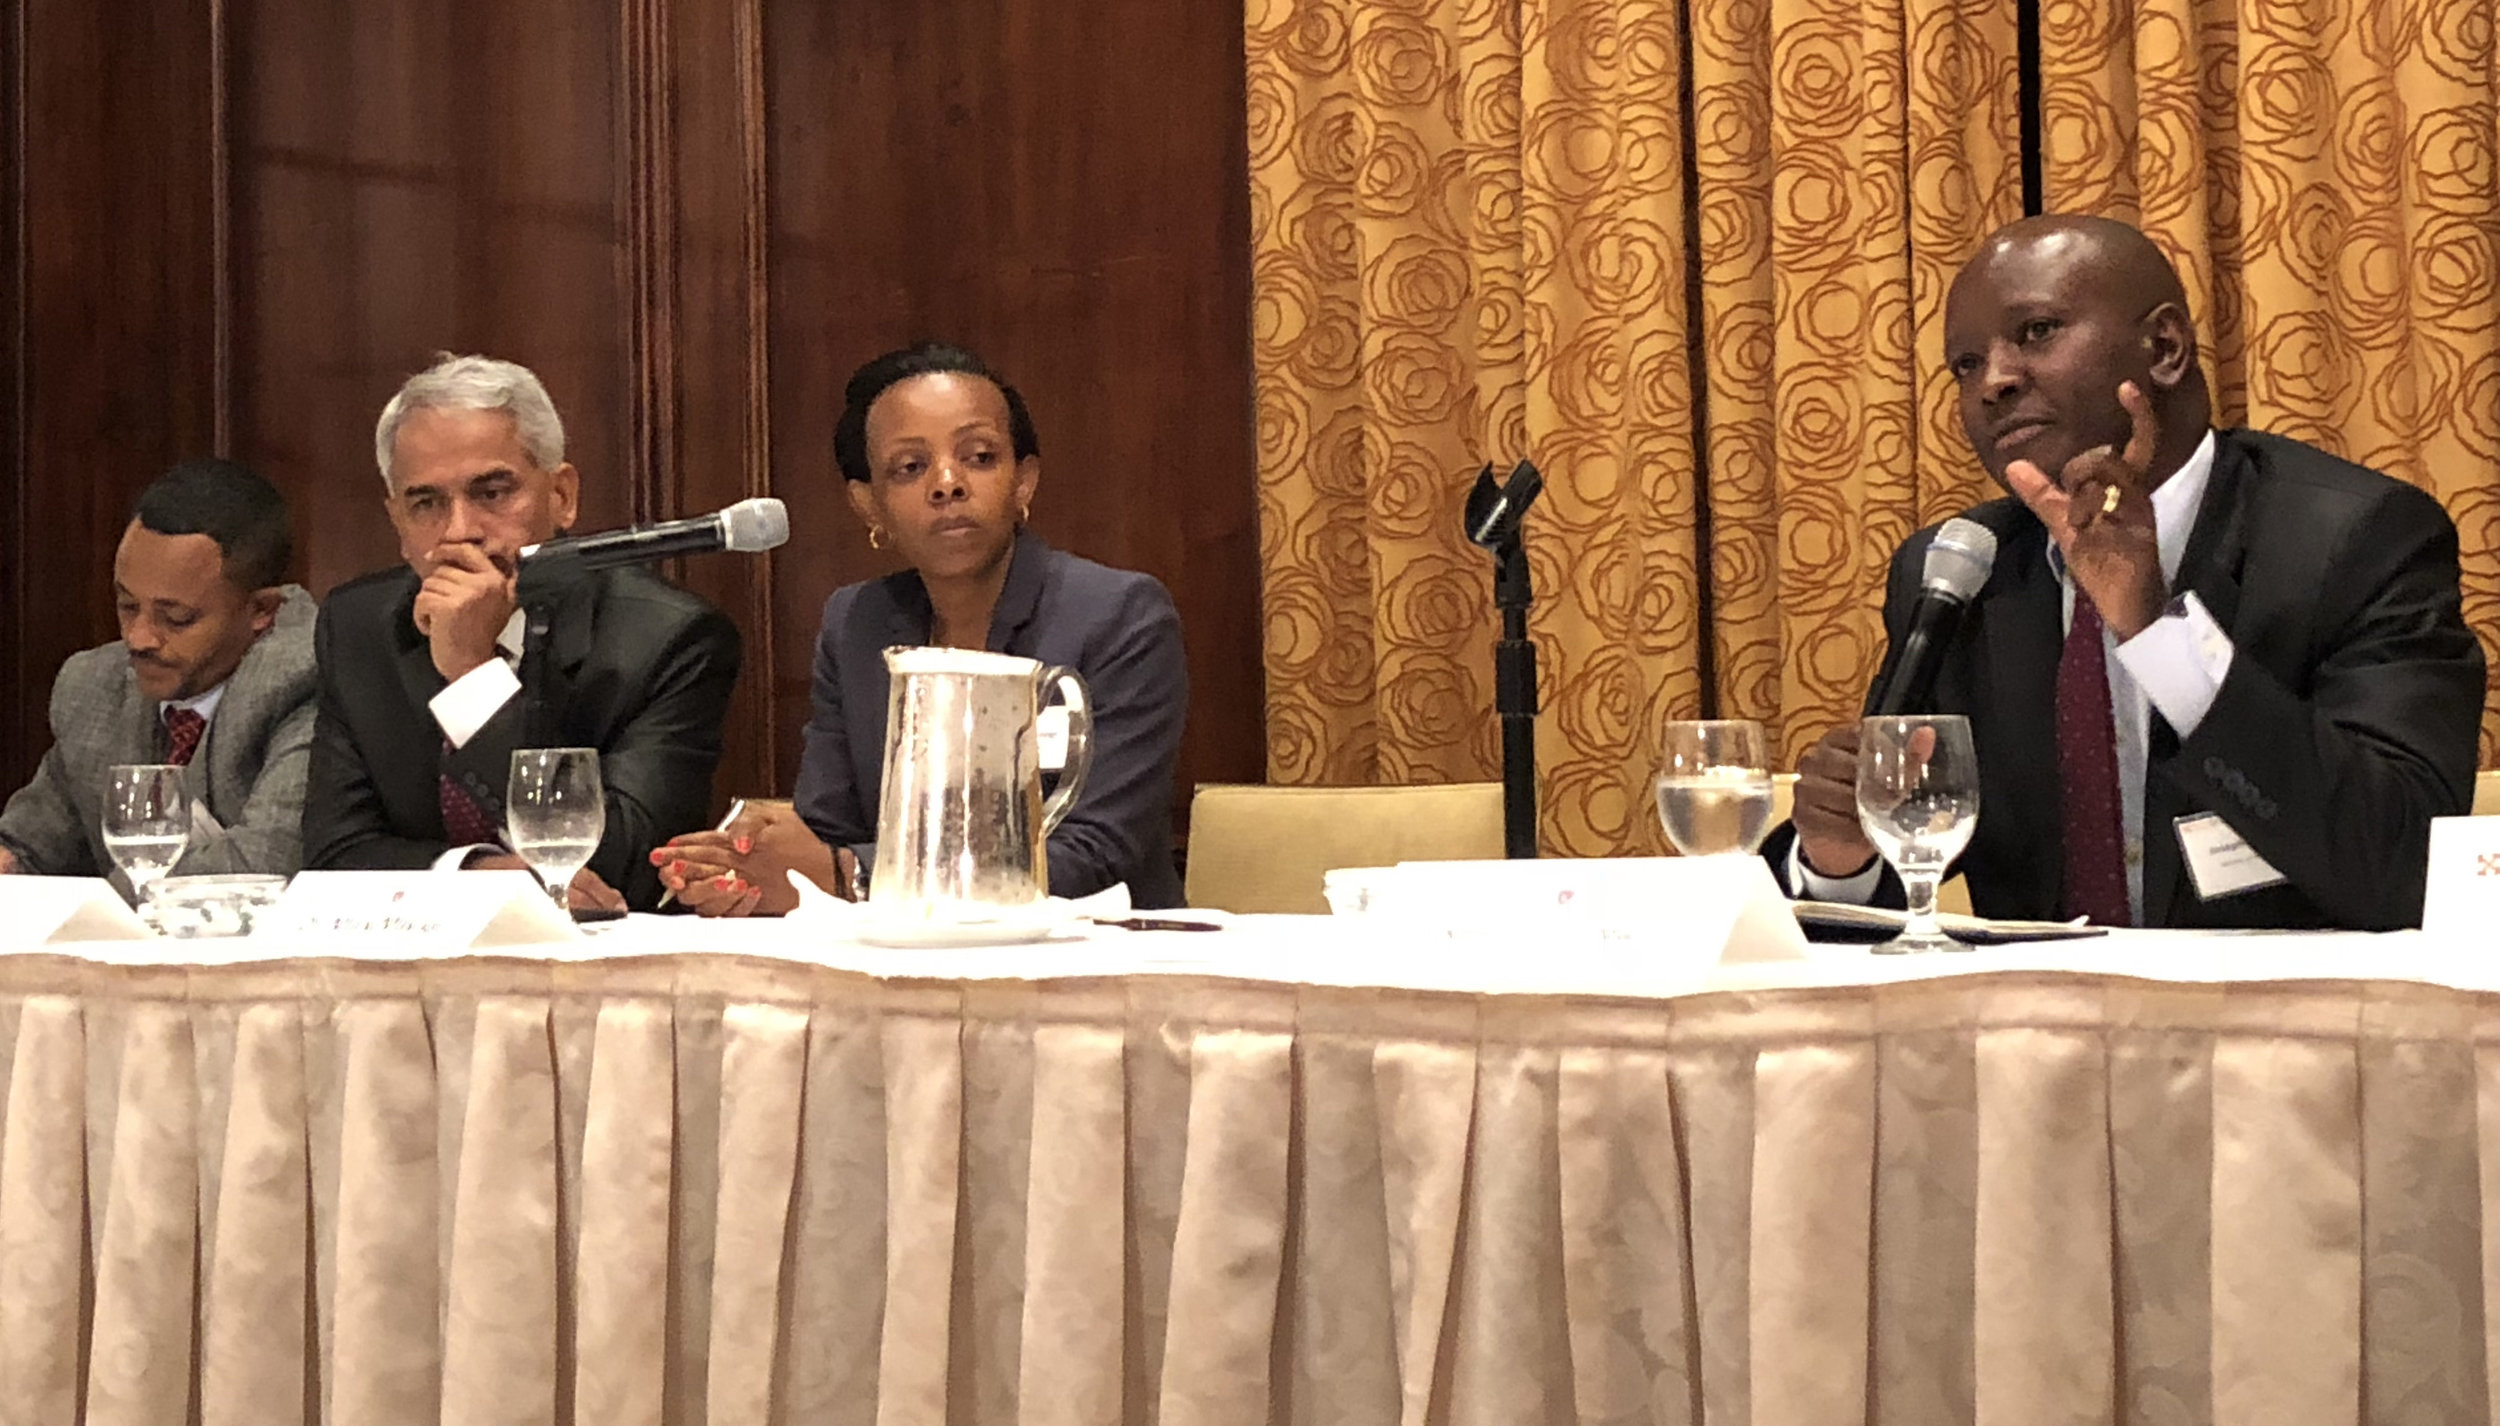 dr. joseph kibachio (right) speaks on a panel of national ncdi poverty commissioners alongside (from left to right) dr. wubaye walelgne, dr. baghawan koirala, and dr mary mayige.